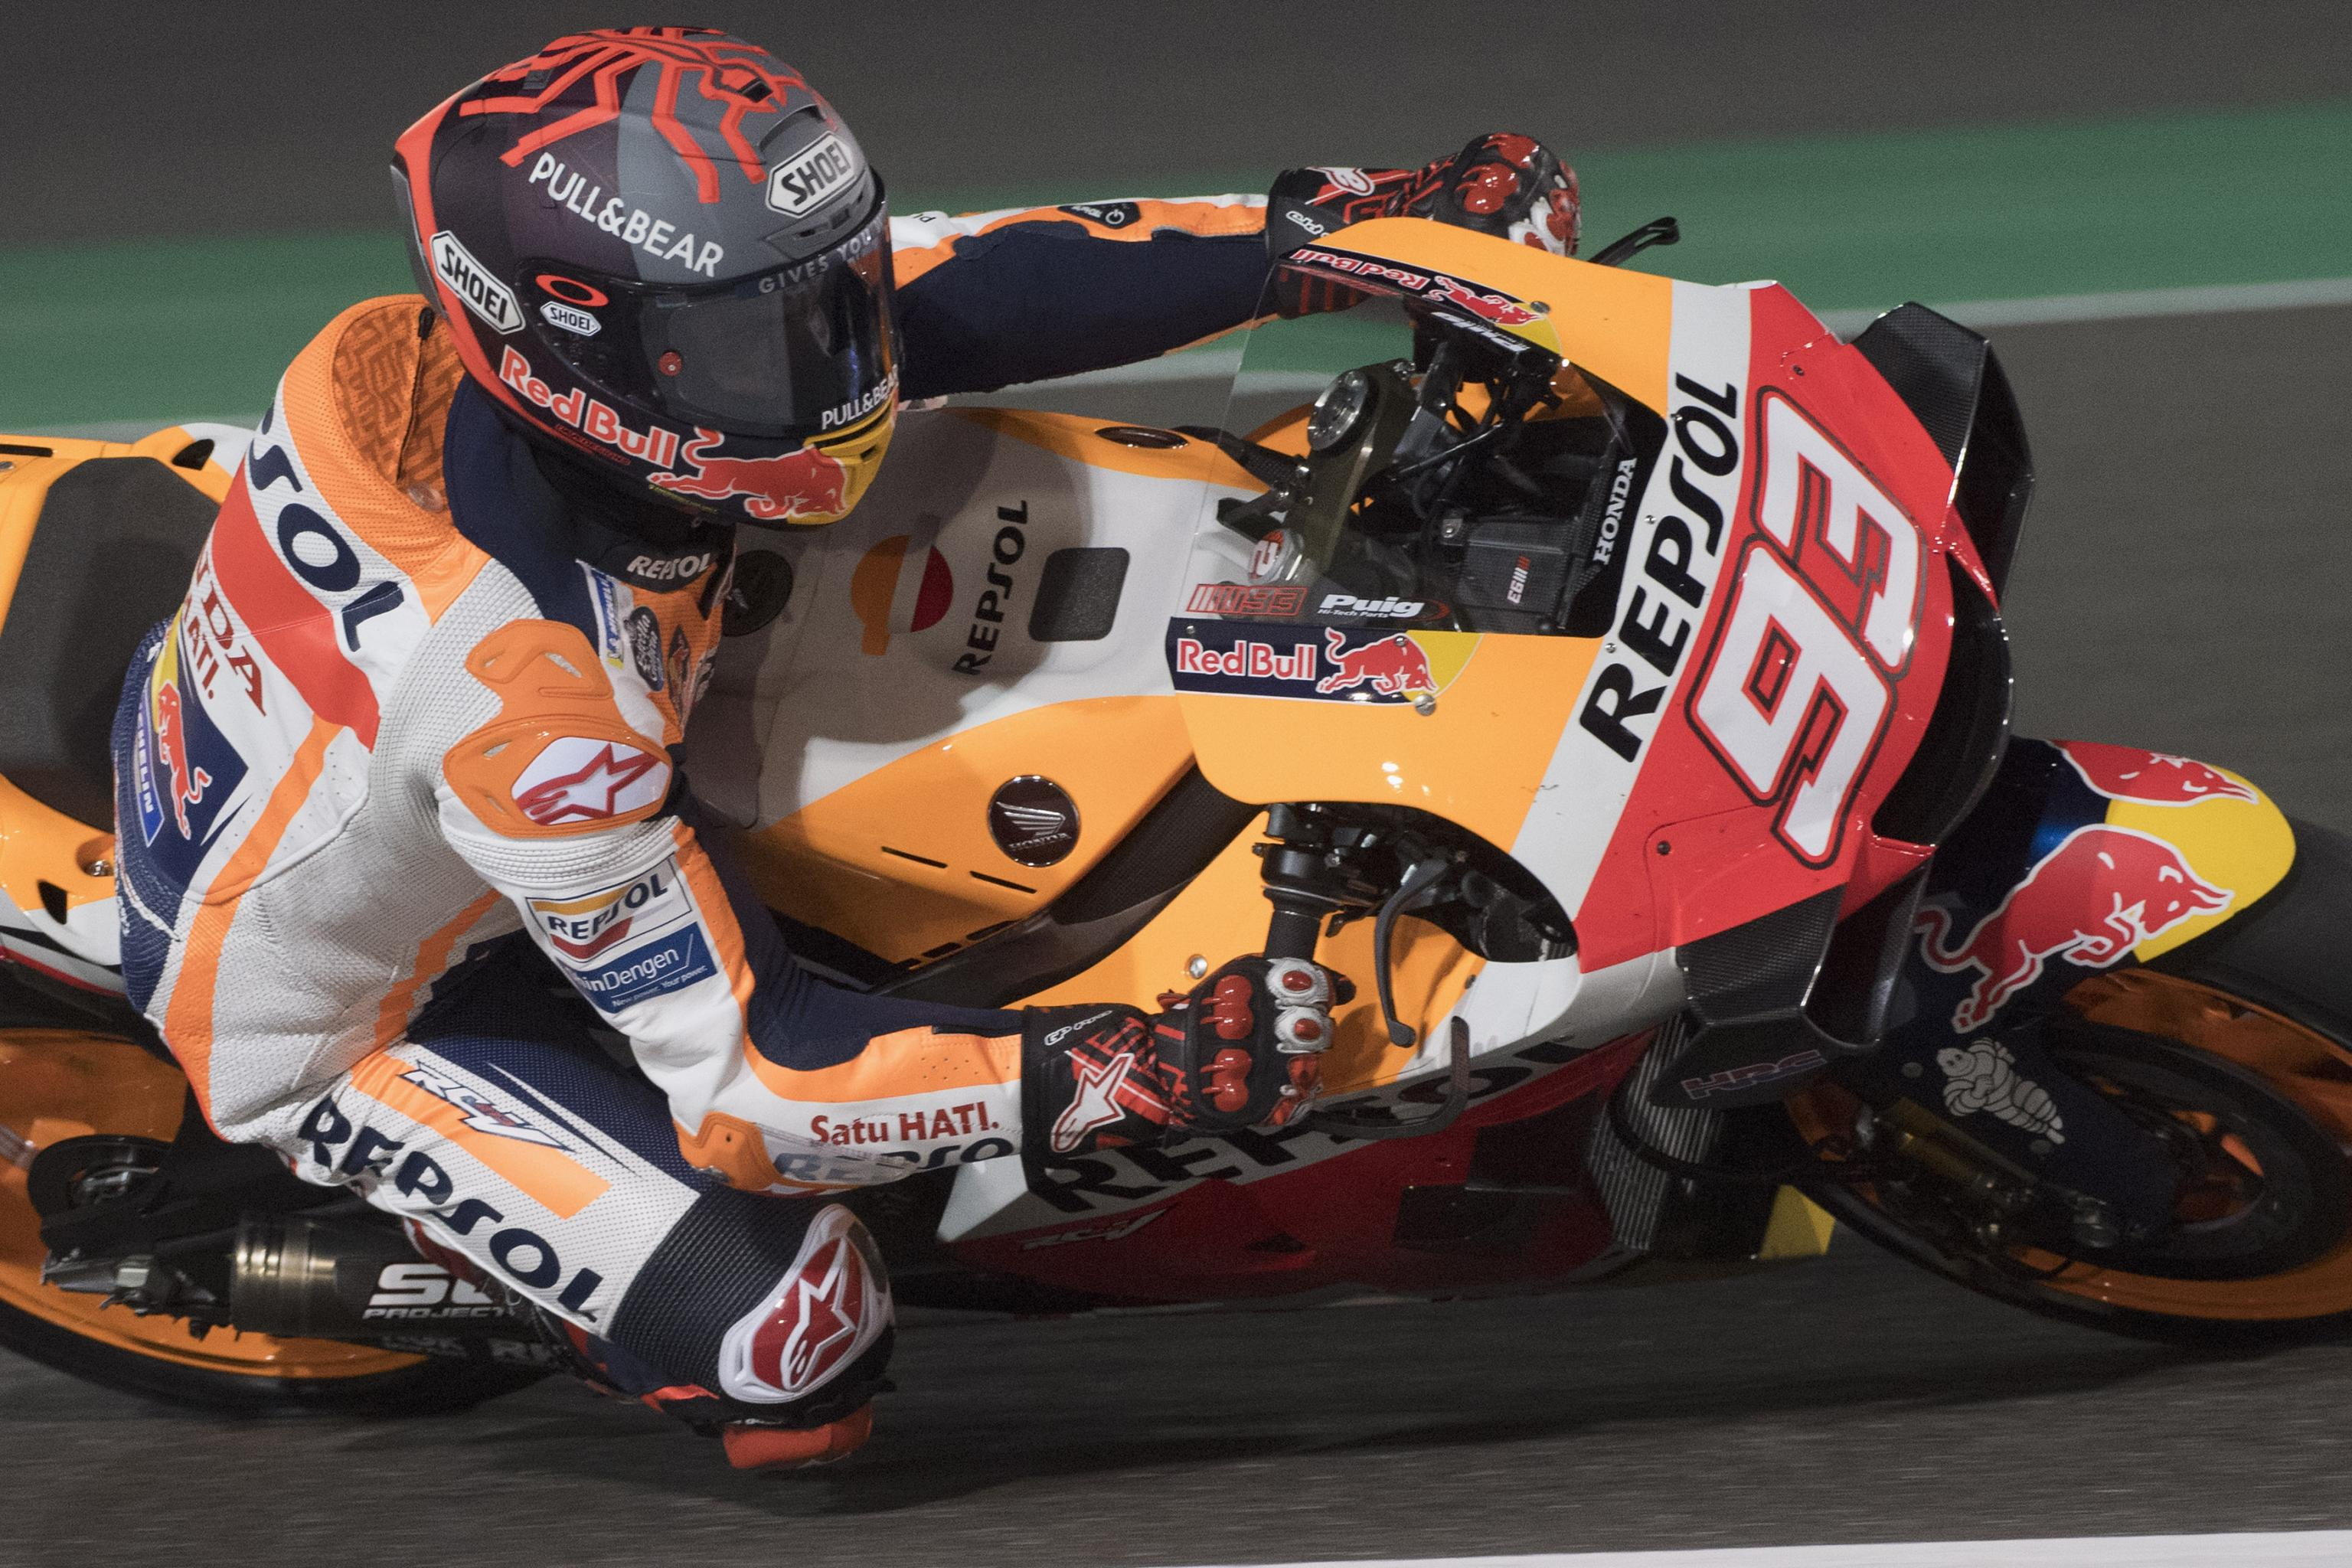 Motogp Grand Prix 2020 Season Schedule Start Times Locations And More Bleacher Report Latest News Videos And Highlights